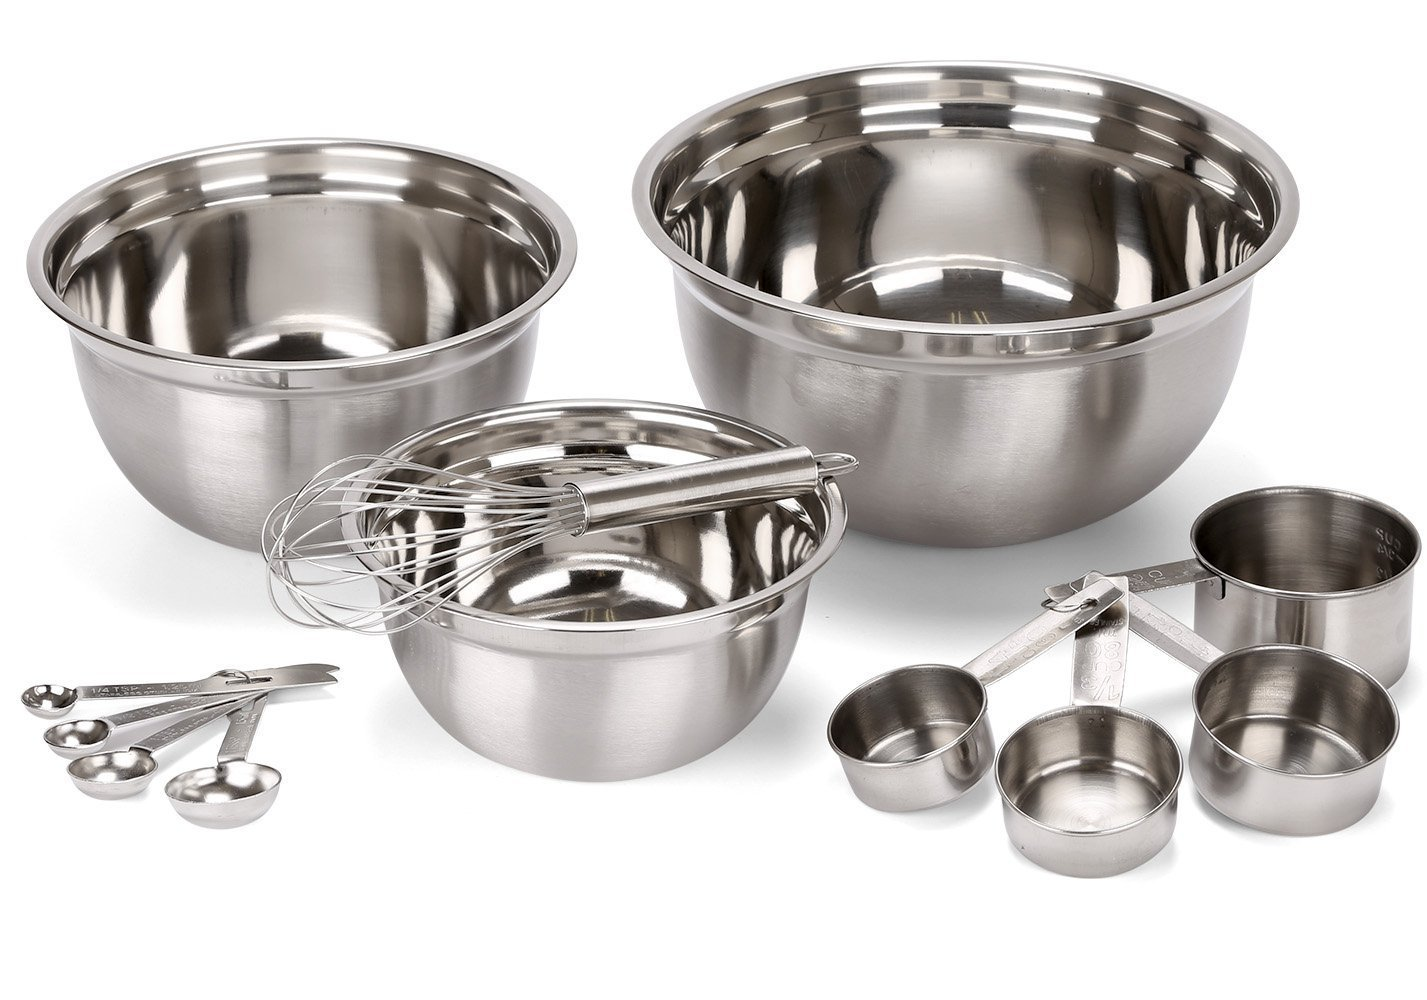 Estilo 12 Piece Stainless Steel Mixing Bowls, Includes Measuring Cups, Measuring Spoons And Barrel Whisk EST0237